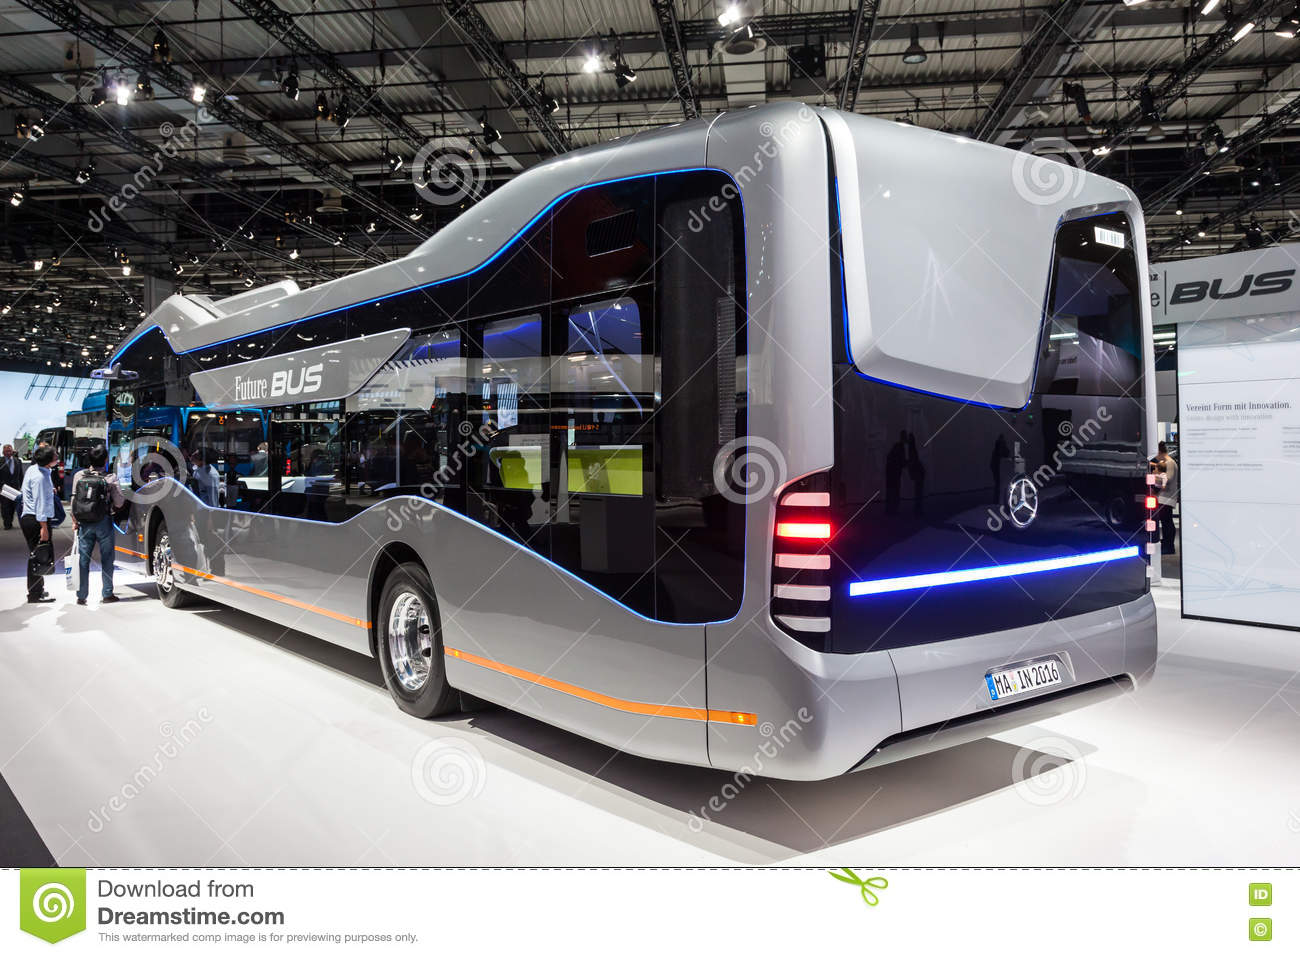 74da0901ce Mercedes Benz Future Bus editorial stock photo. Image of business ...